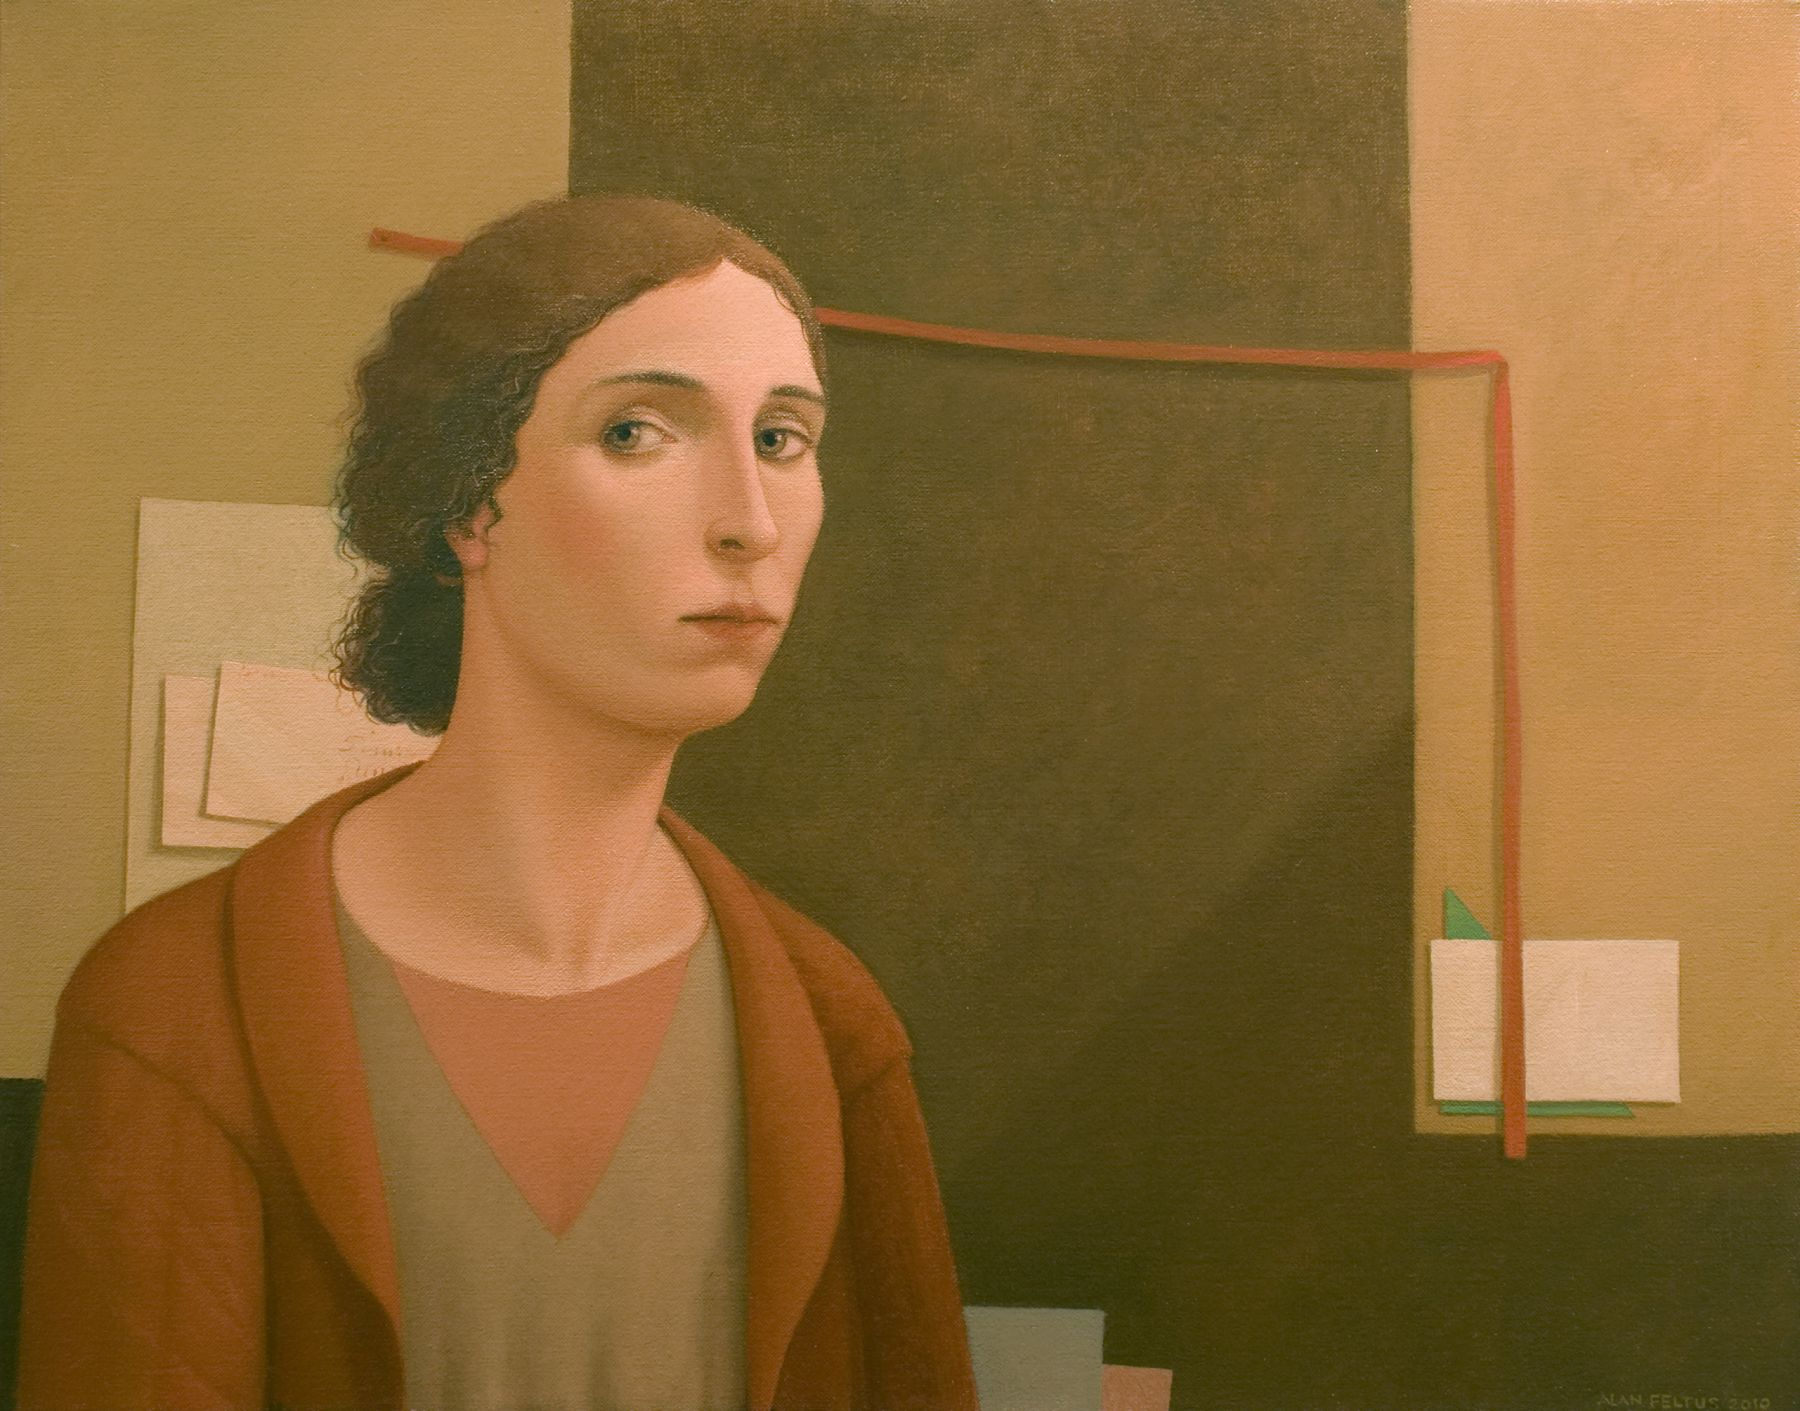 Alan Feltus, Minku's Inescapable Space, 2010, oil on linen, 22 7/8 x 28 7/8 inches